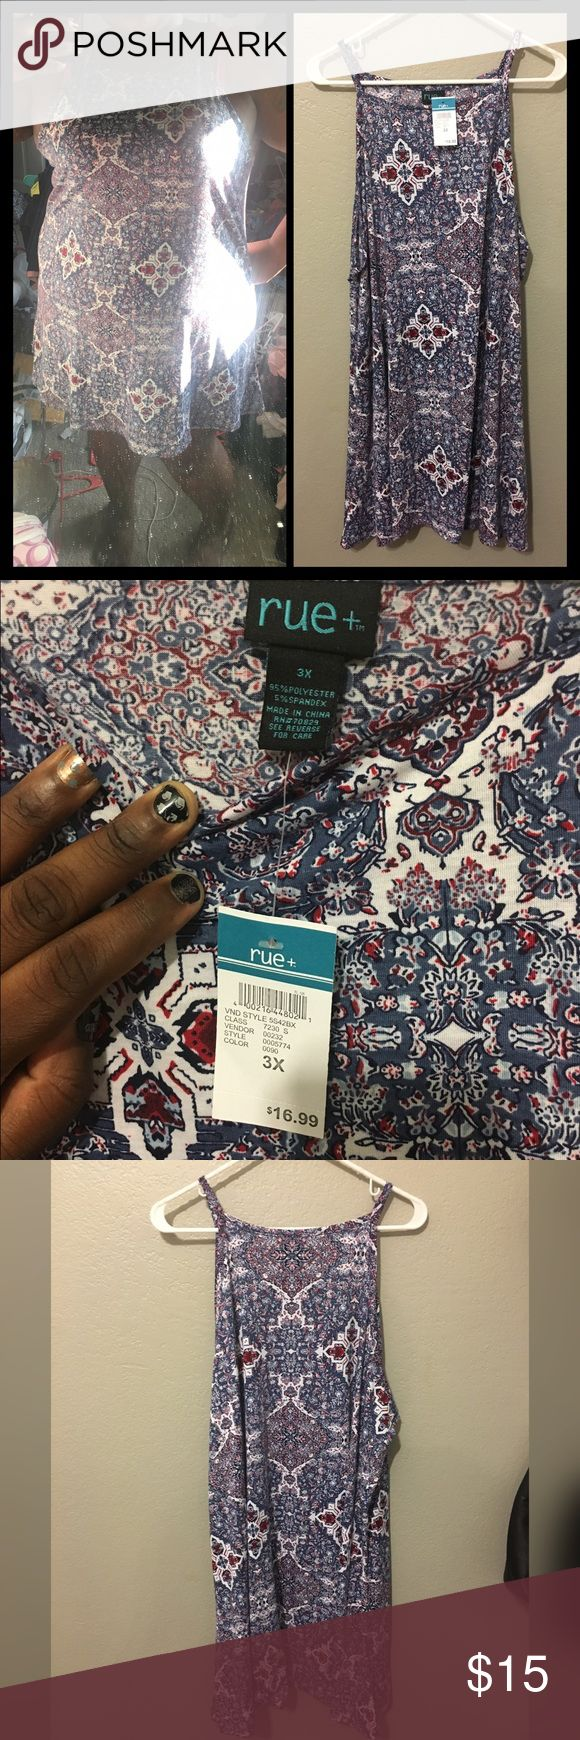 Rue21 aztec print dress size 3x Brand new never worn dress from rue21 plus size aztec print super cute with lil stretch breezy great for festival spring summer beachtime Rue 21 Dresses